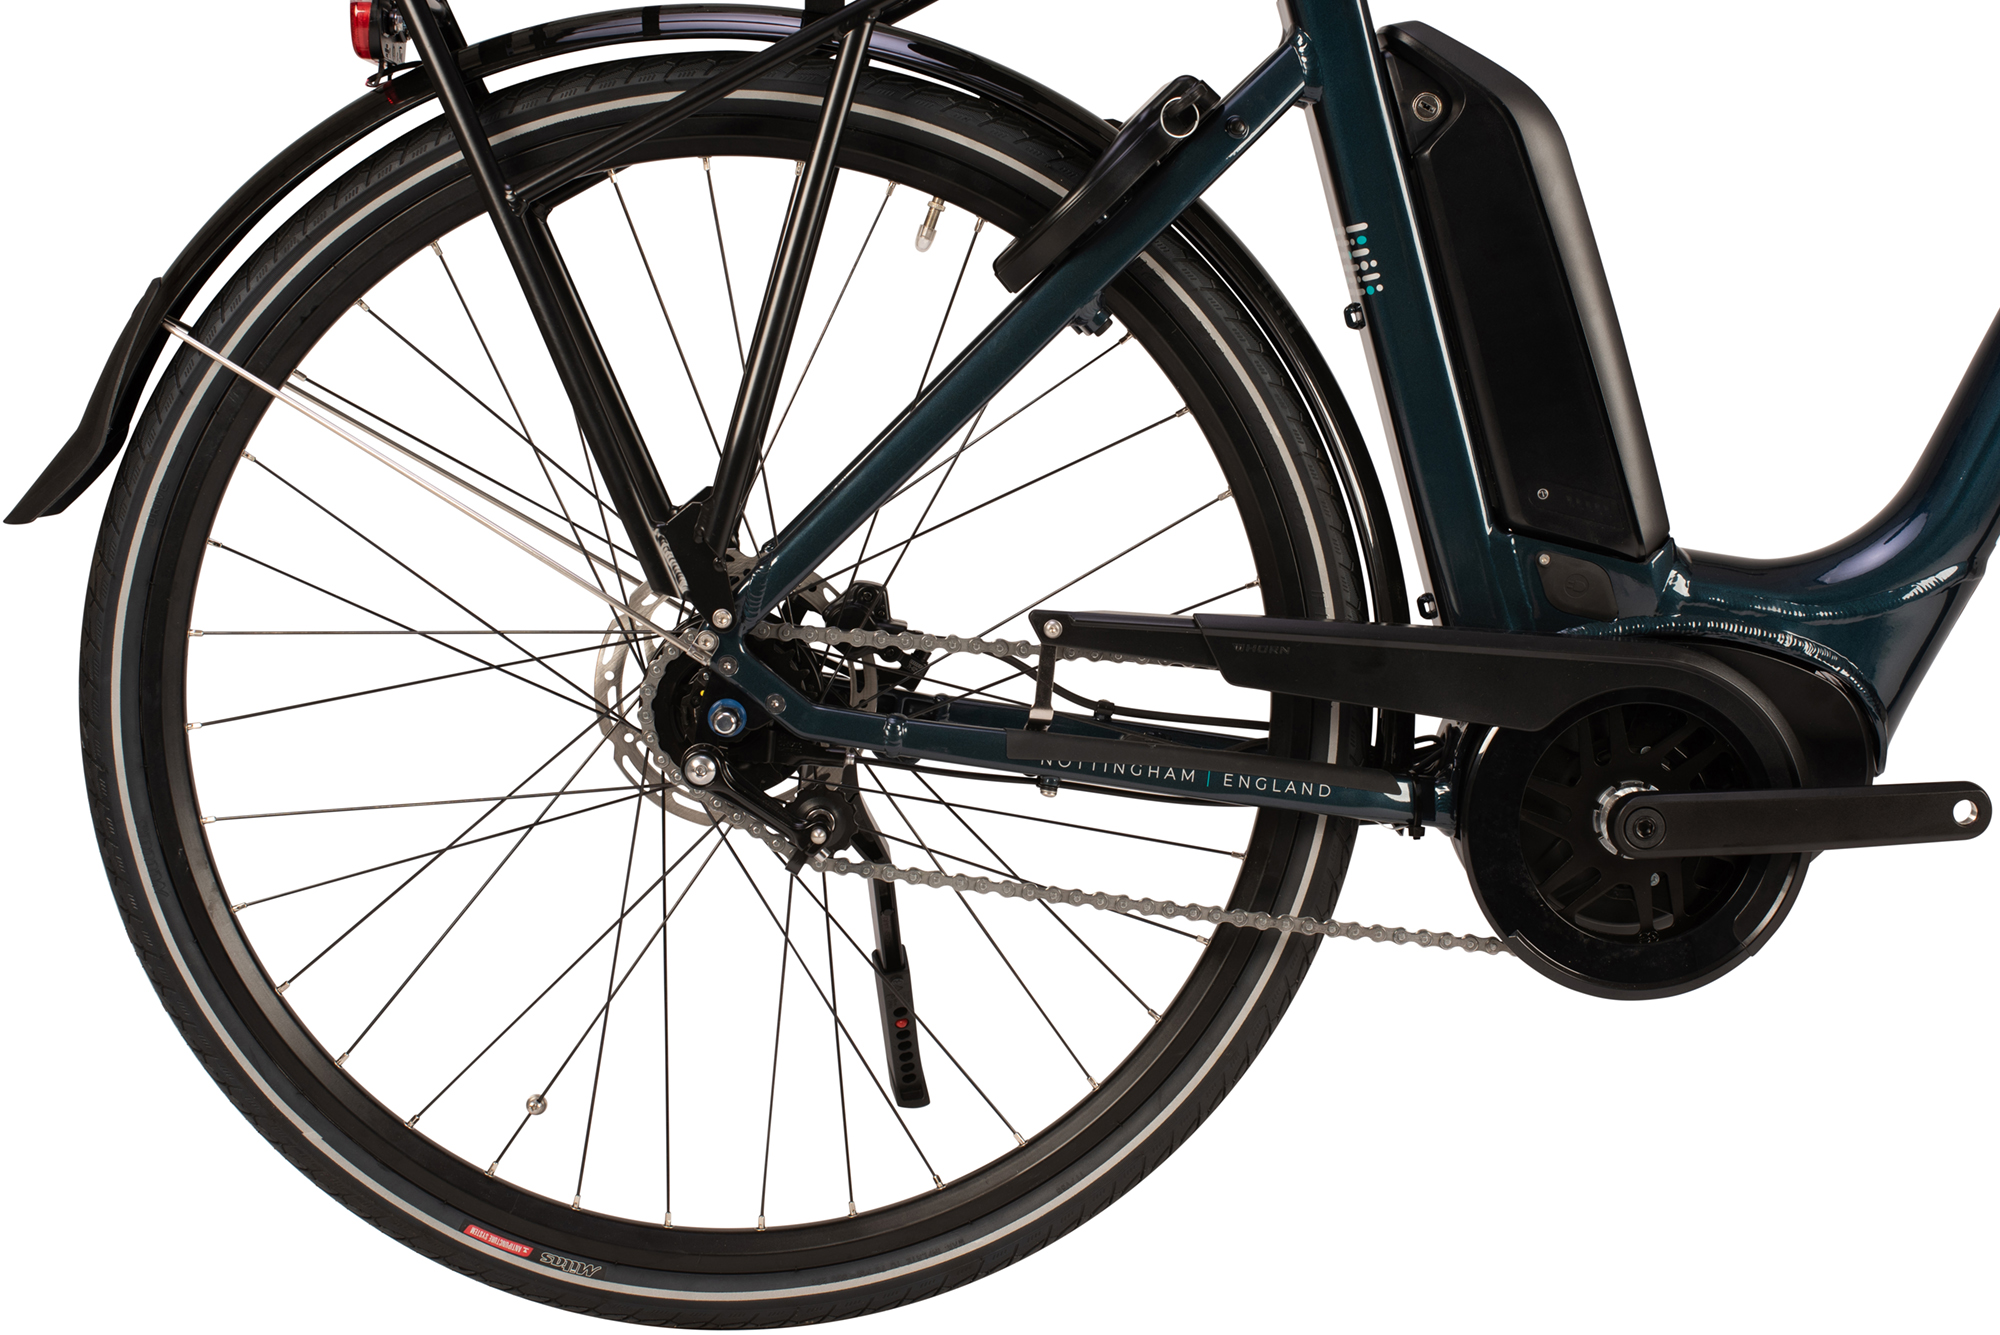 Drivetrain and battery on the Raleigh Motus Grand Tour low step electric bike